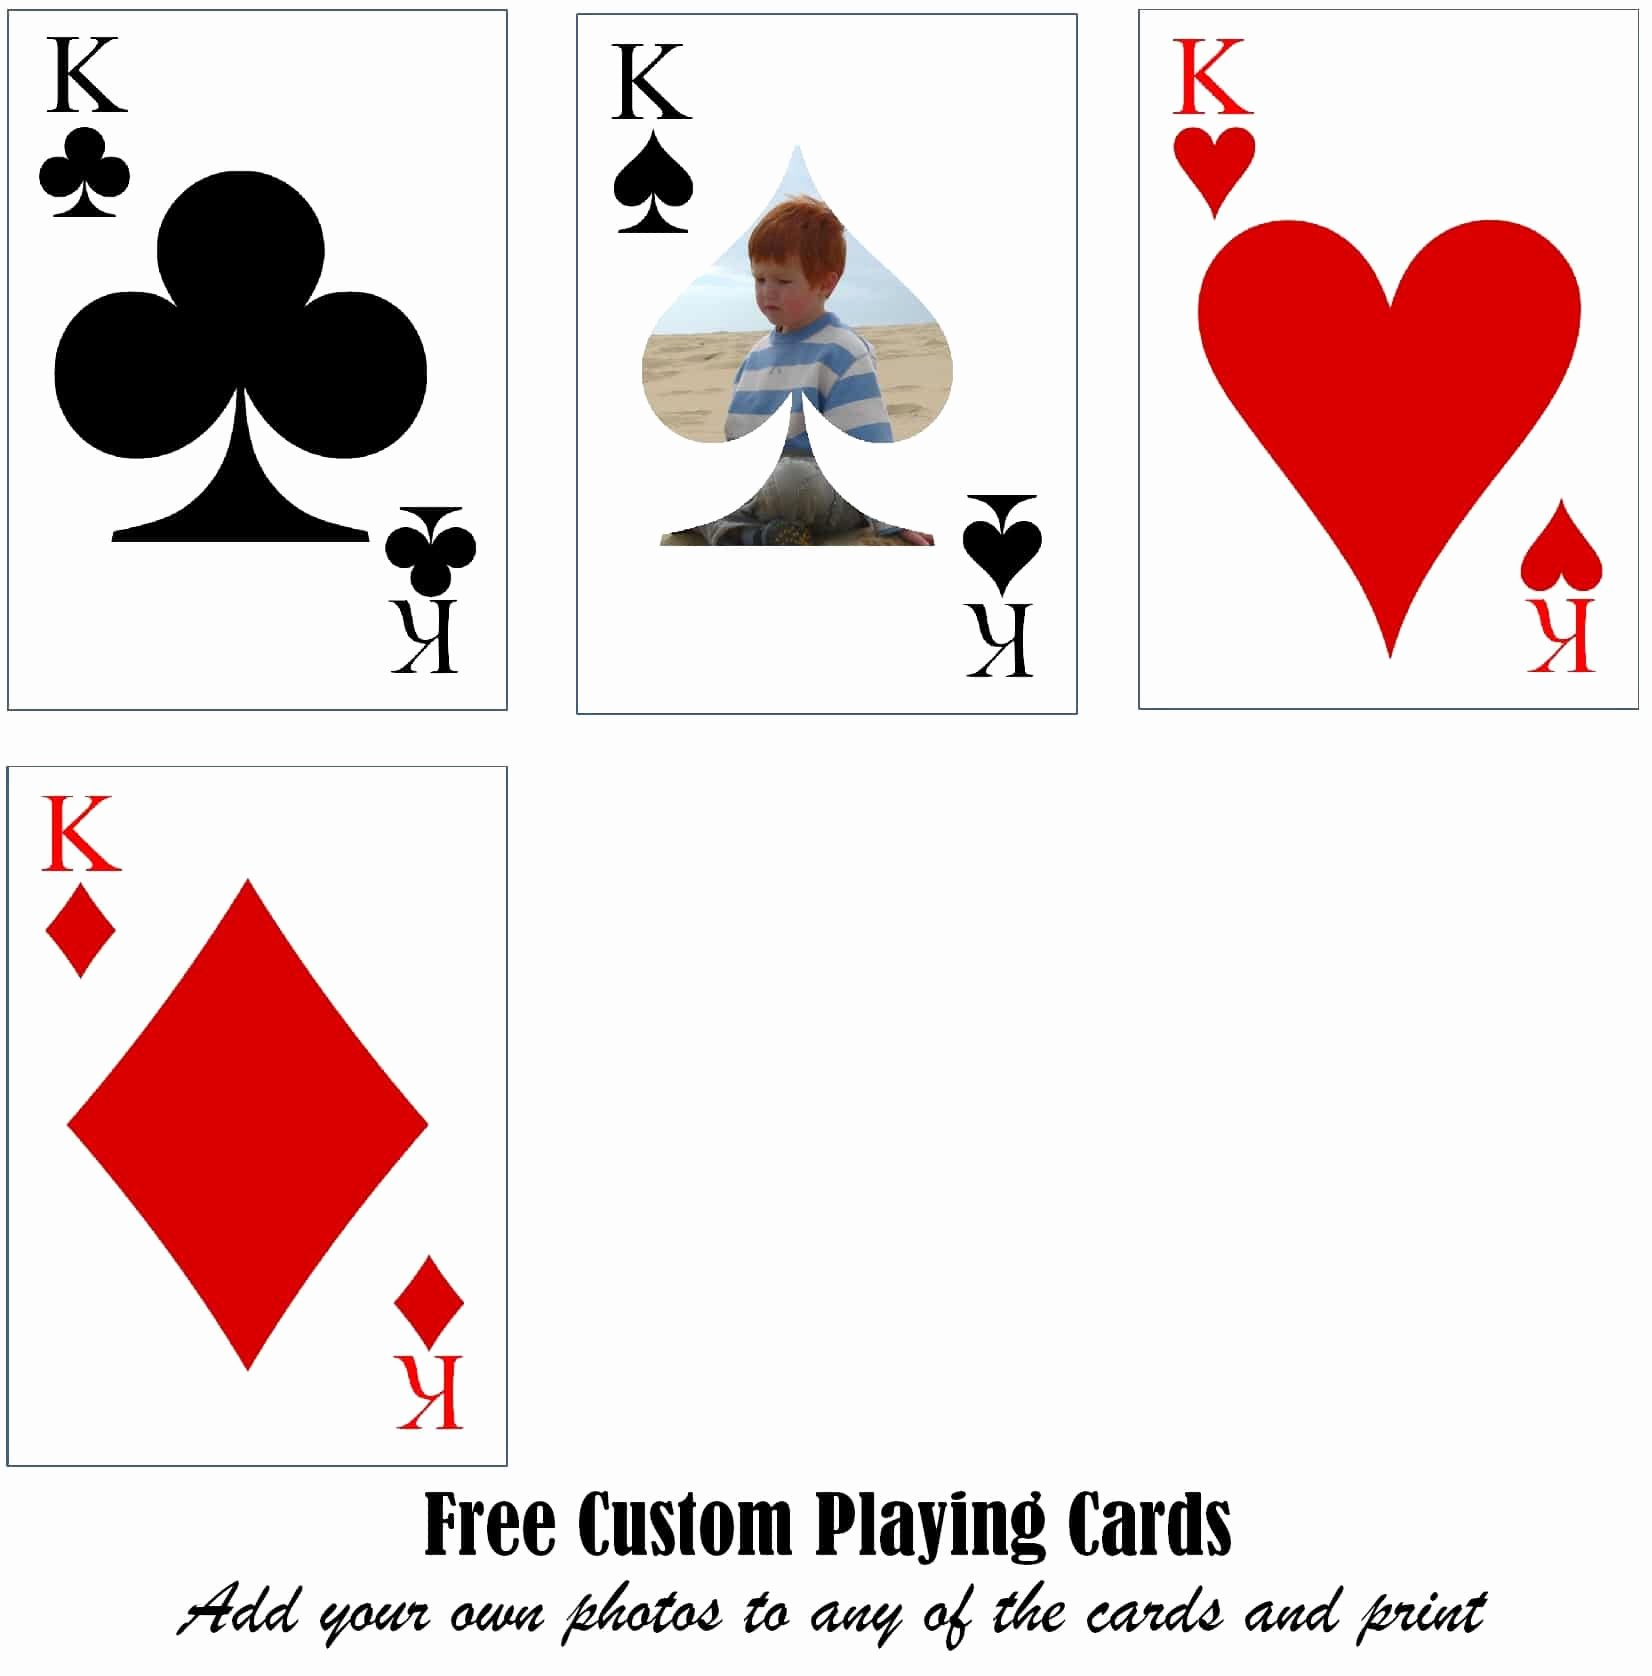 Custom Playing Card Template Unique Free Printable Custom Playing Cards